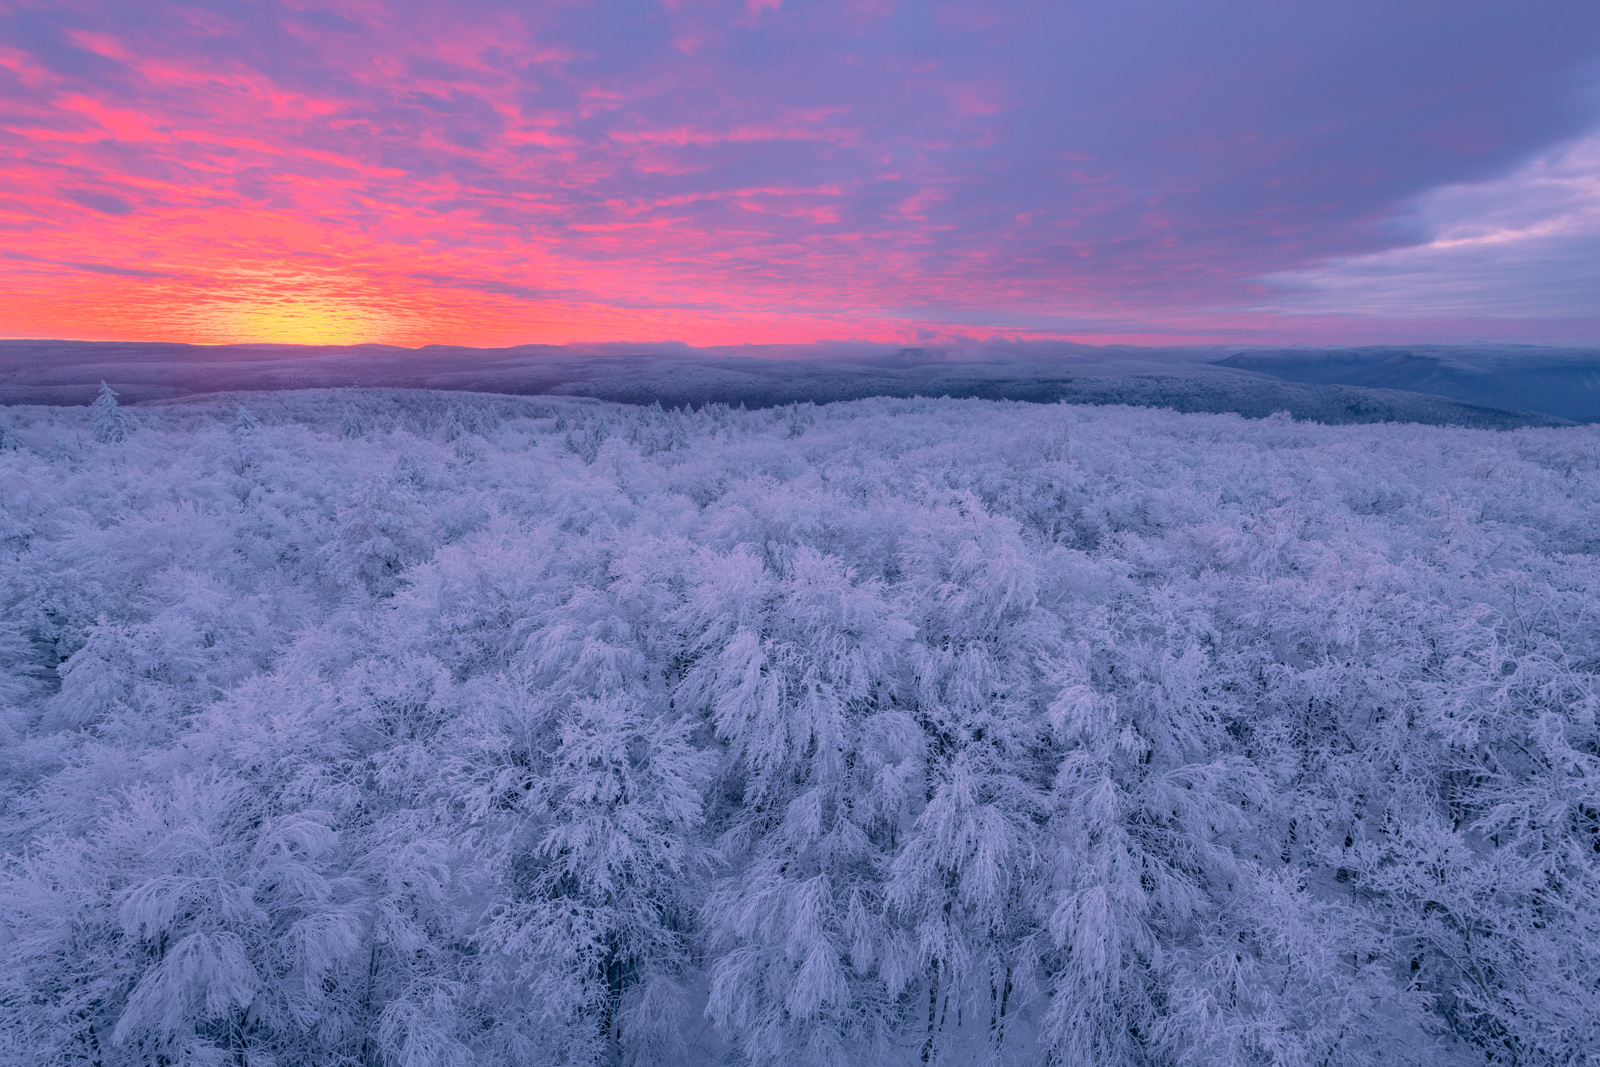 Winter sunrise over Hoar Frost Covered trees in the Monongahela National Forest, West Virginia